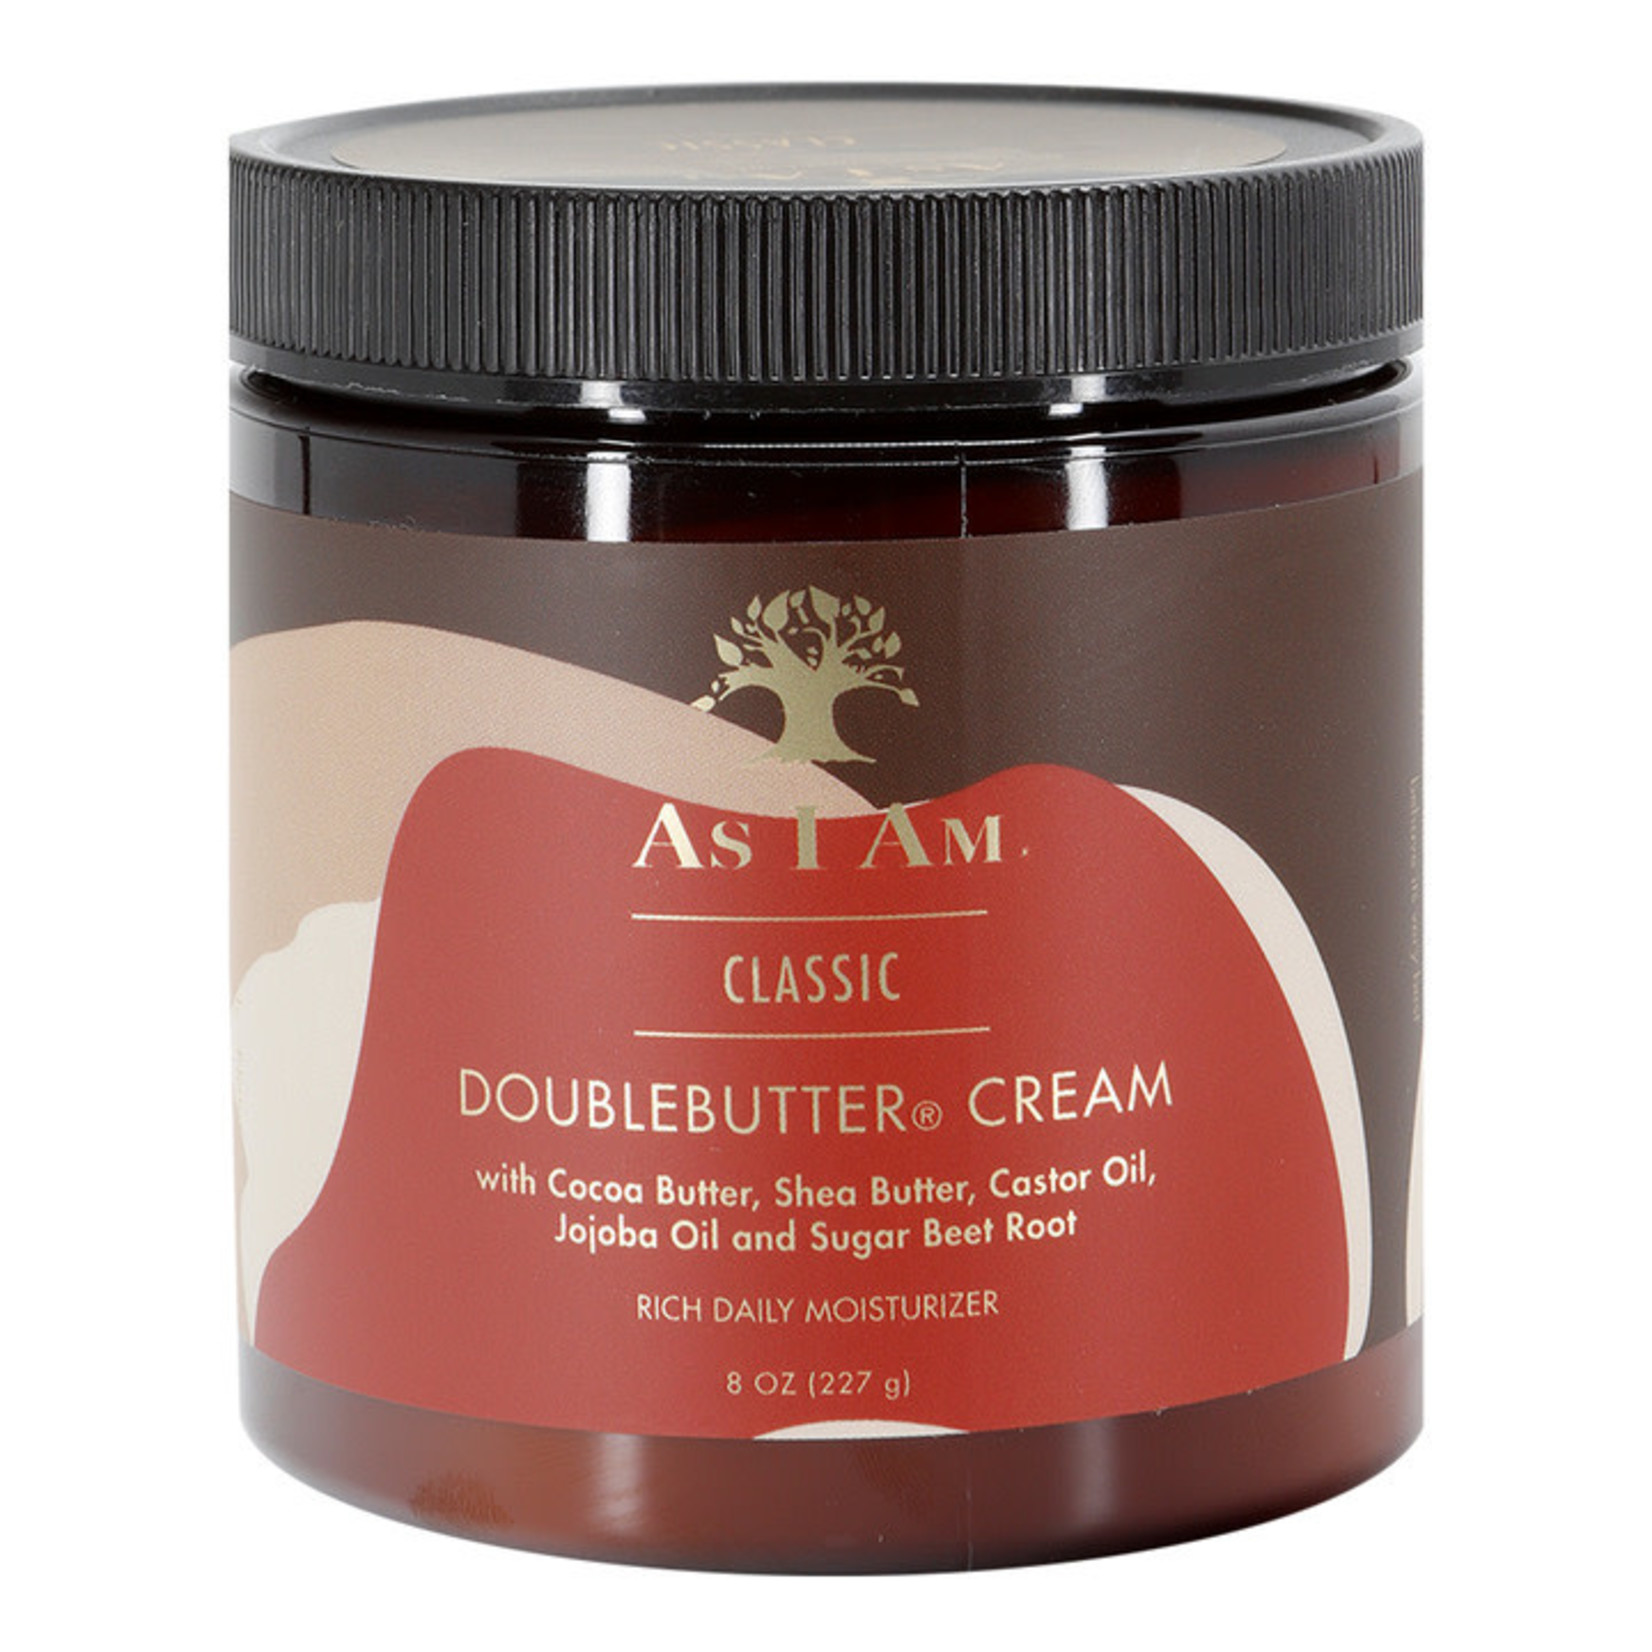 AS I AM AS I AM DOUBLE BUTTER CREAM [8OZ]